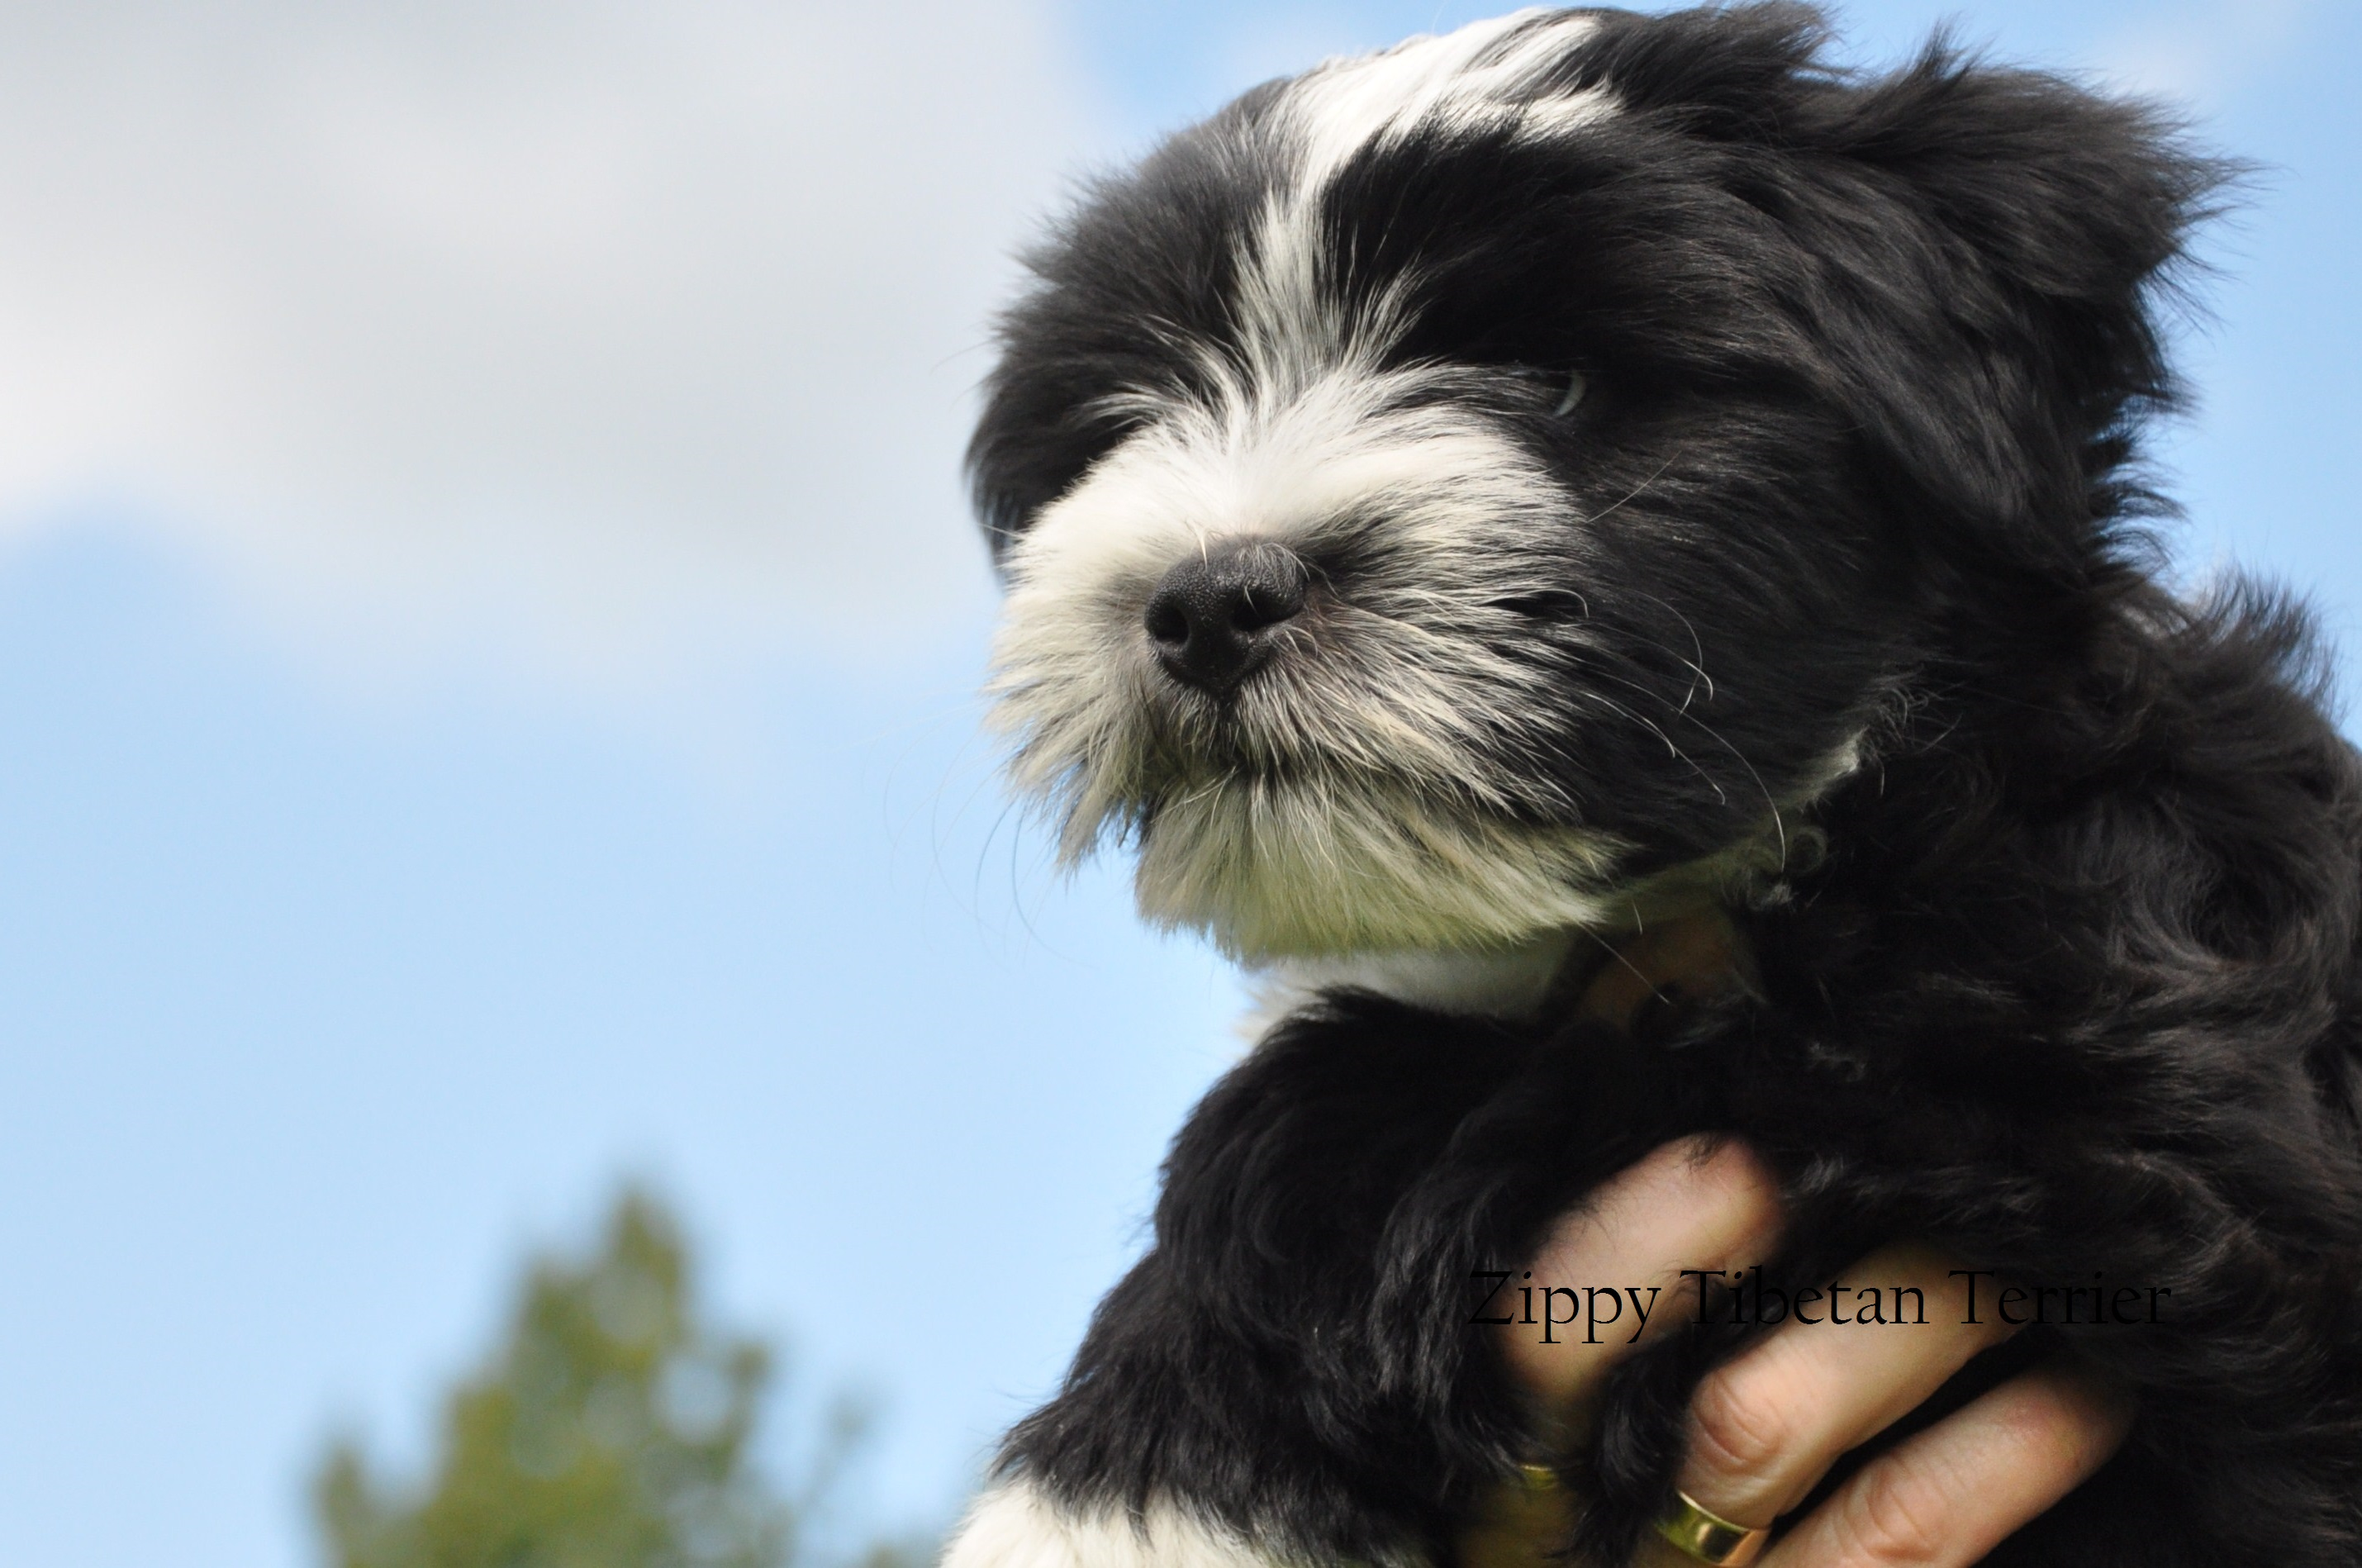 Zippy Tibetan Terrier